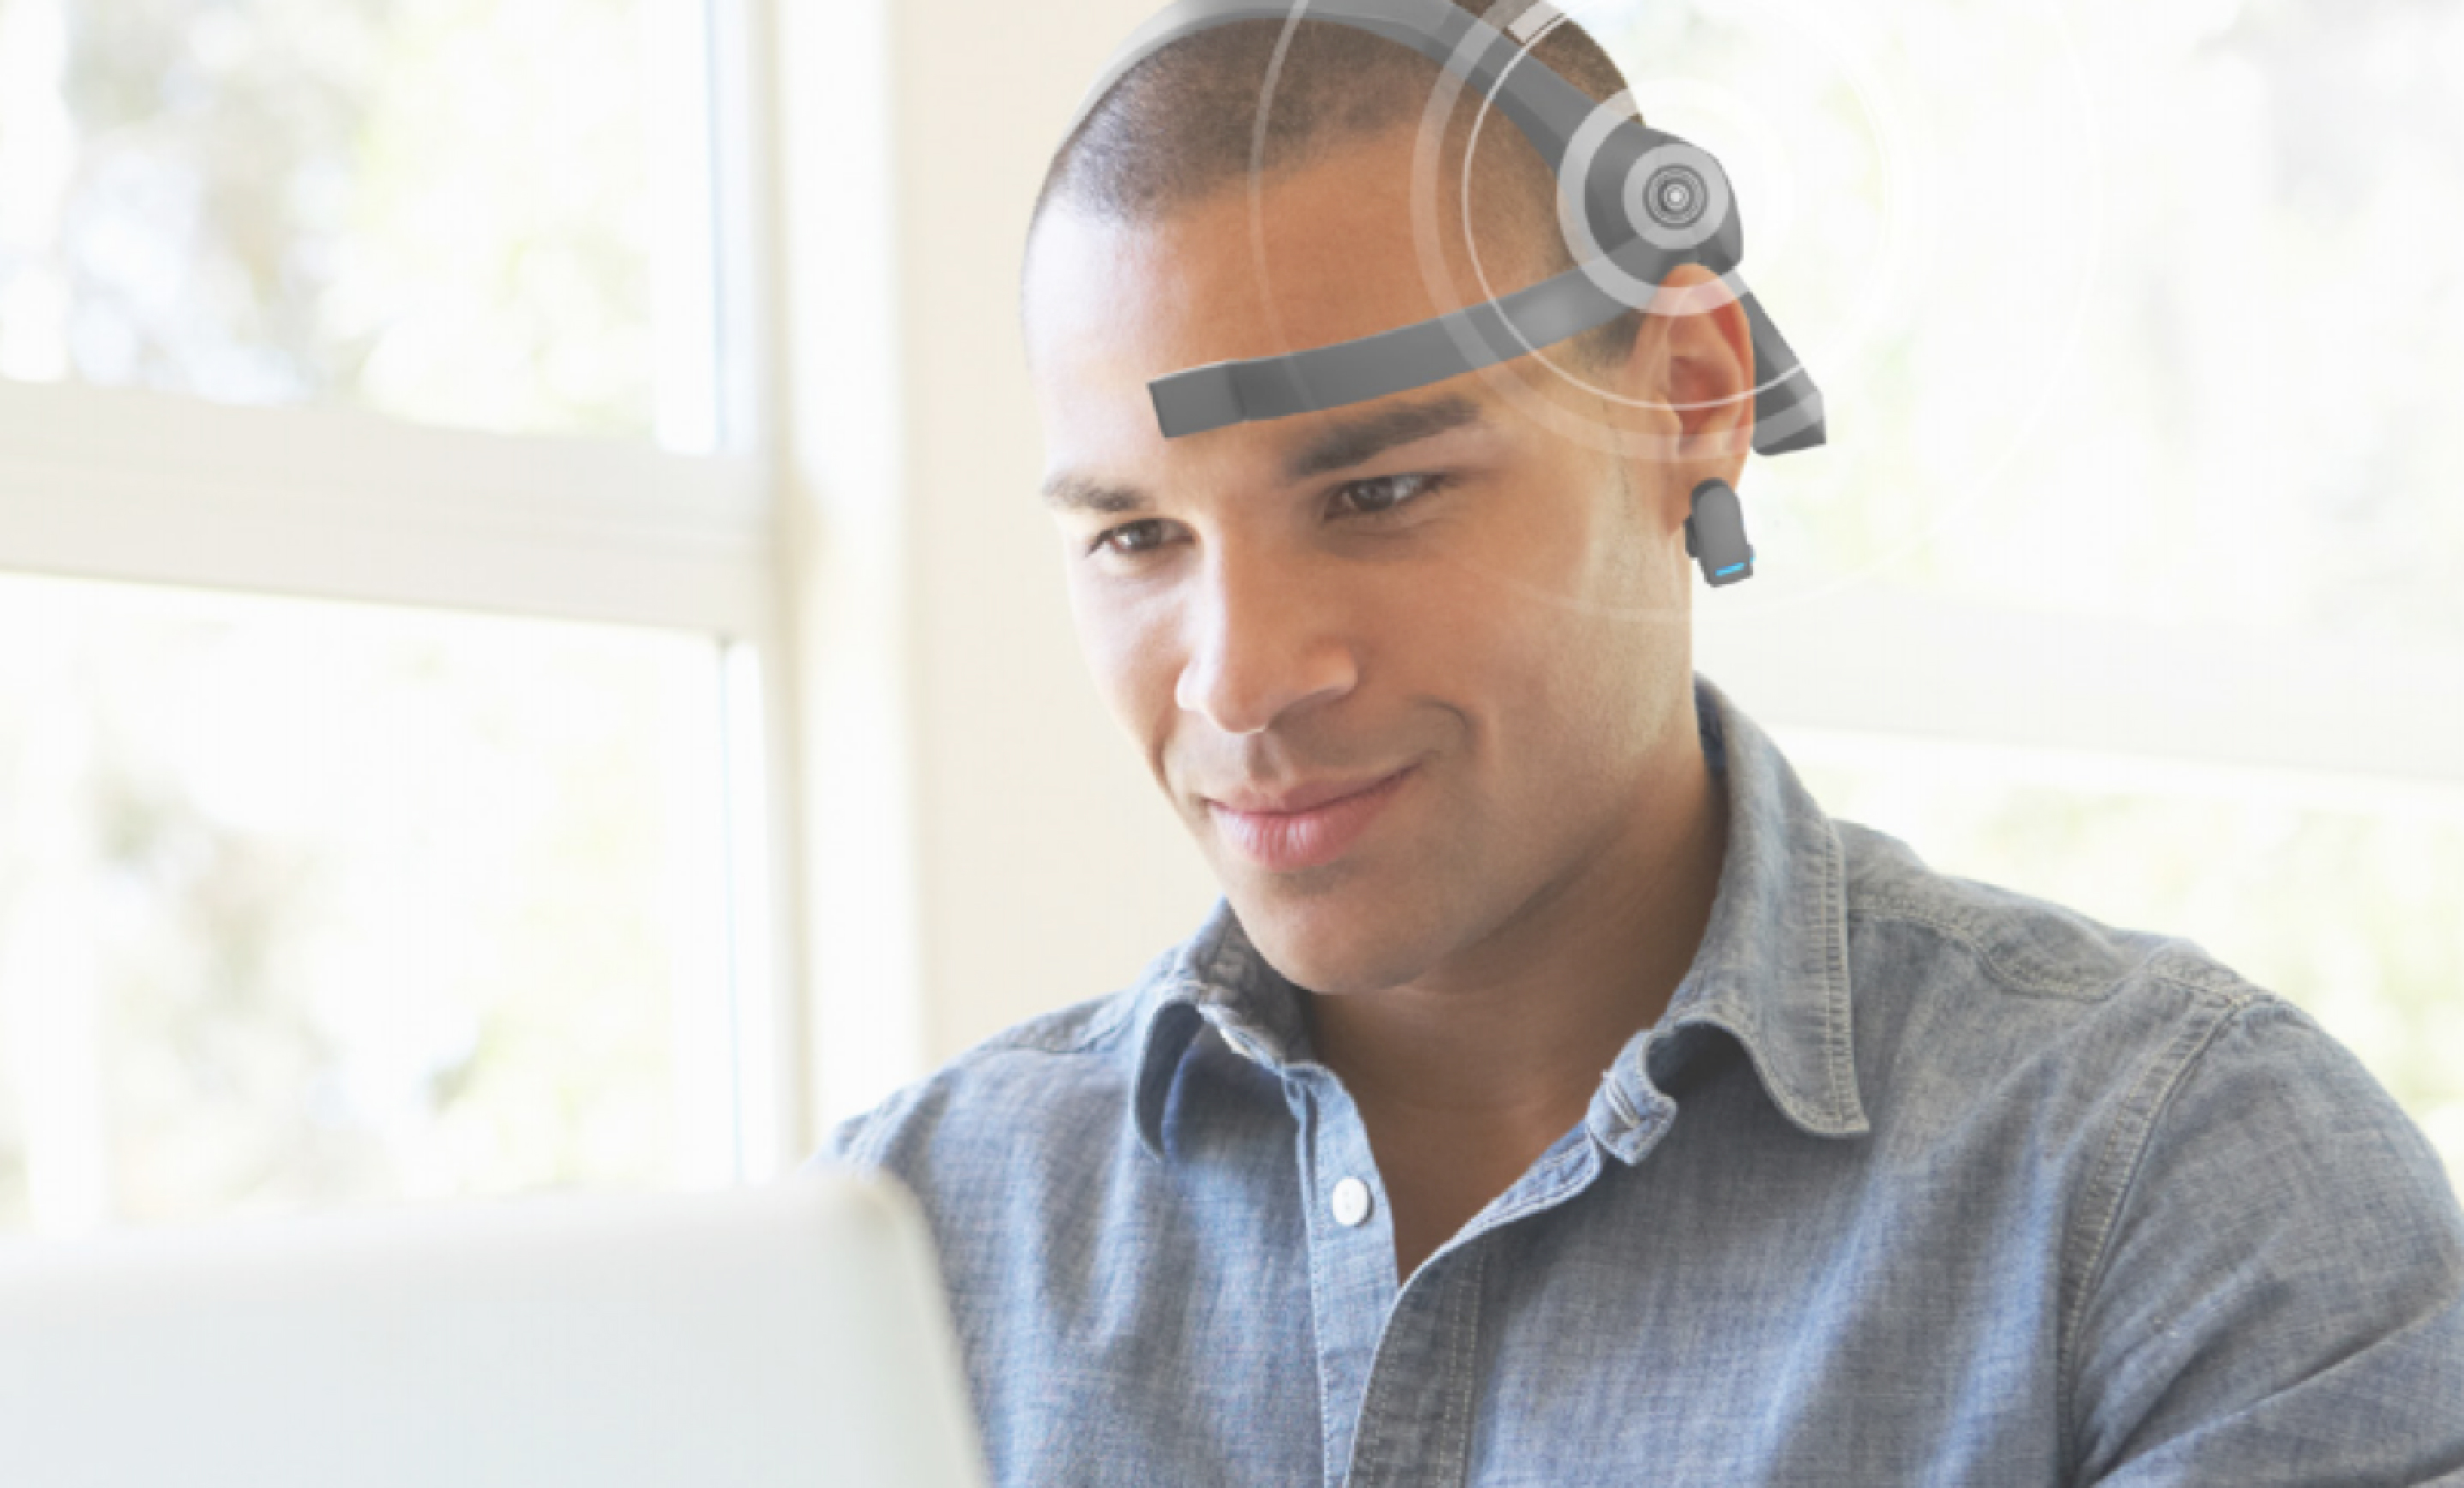 Man wearing EEG Headset